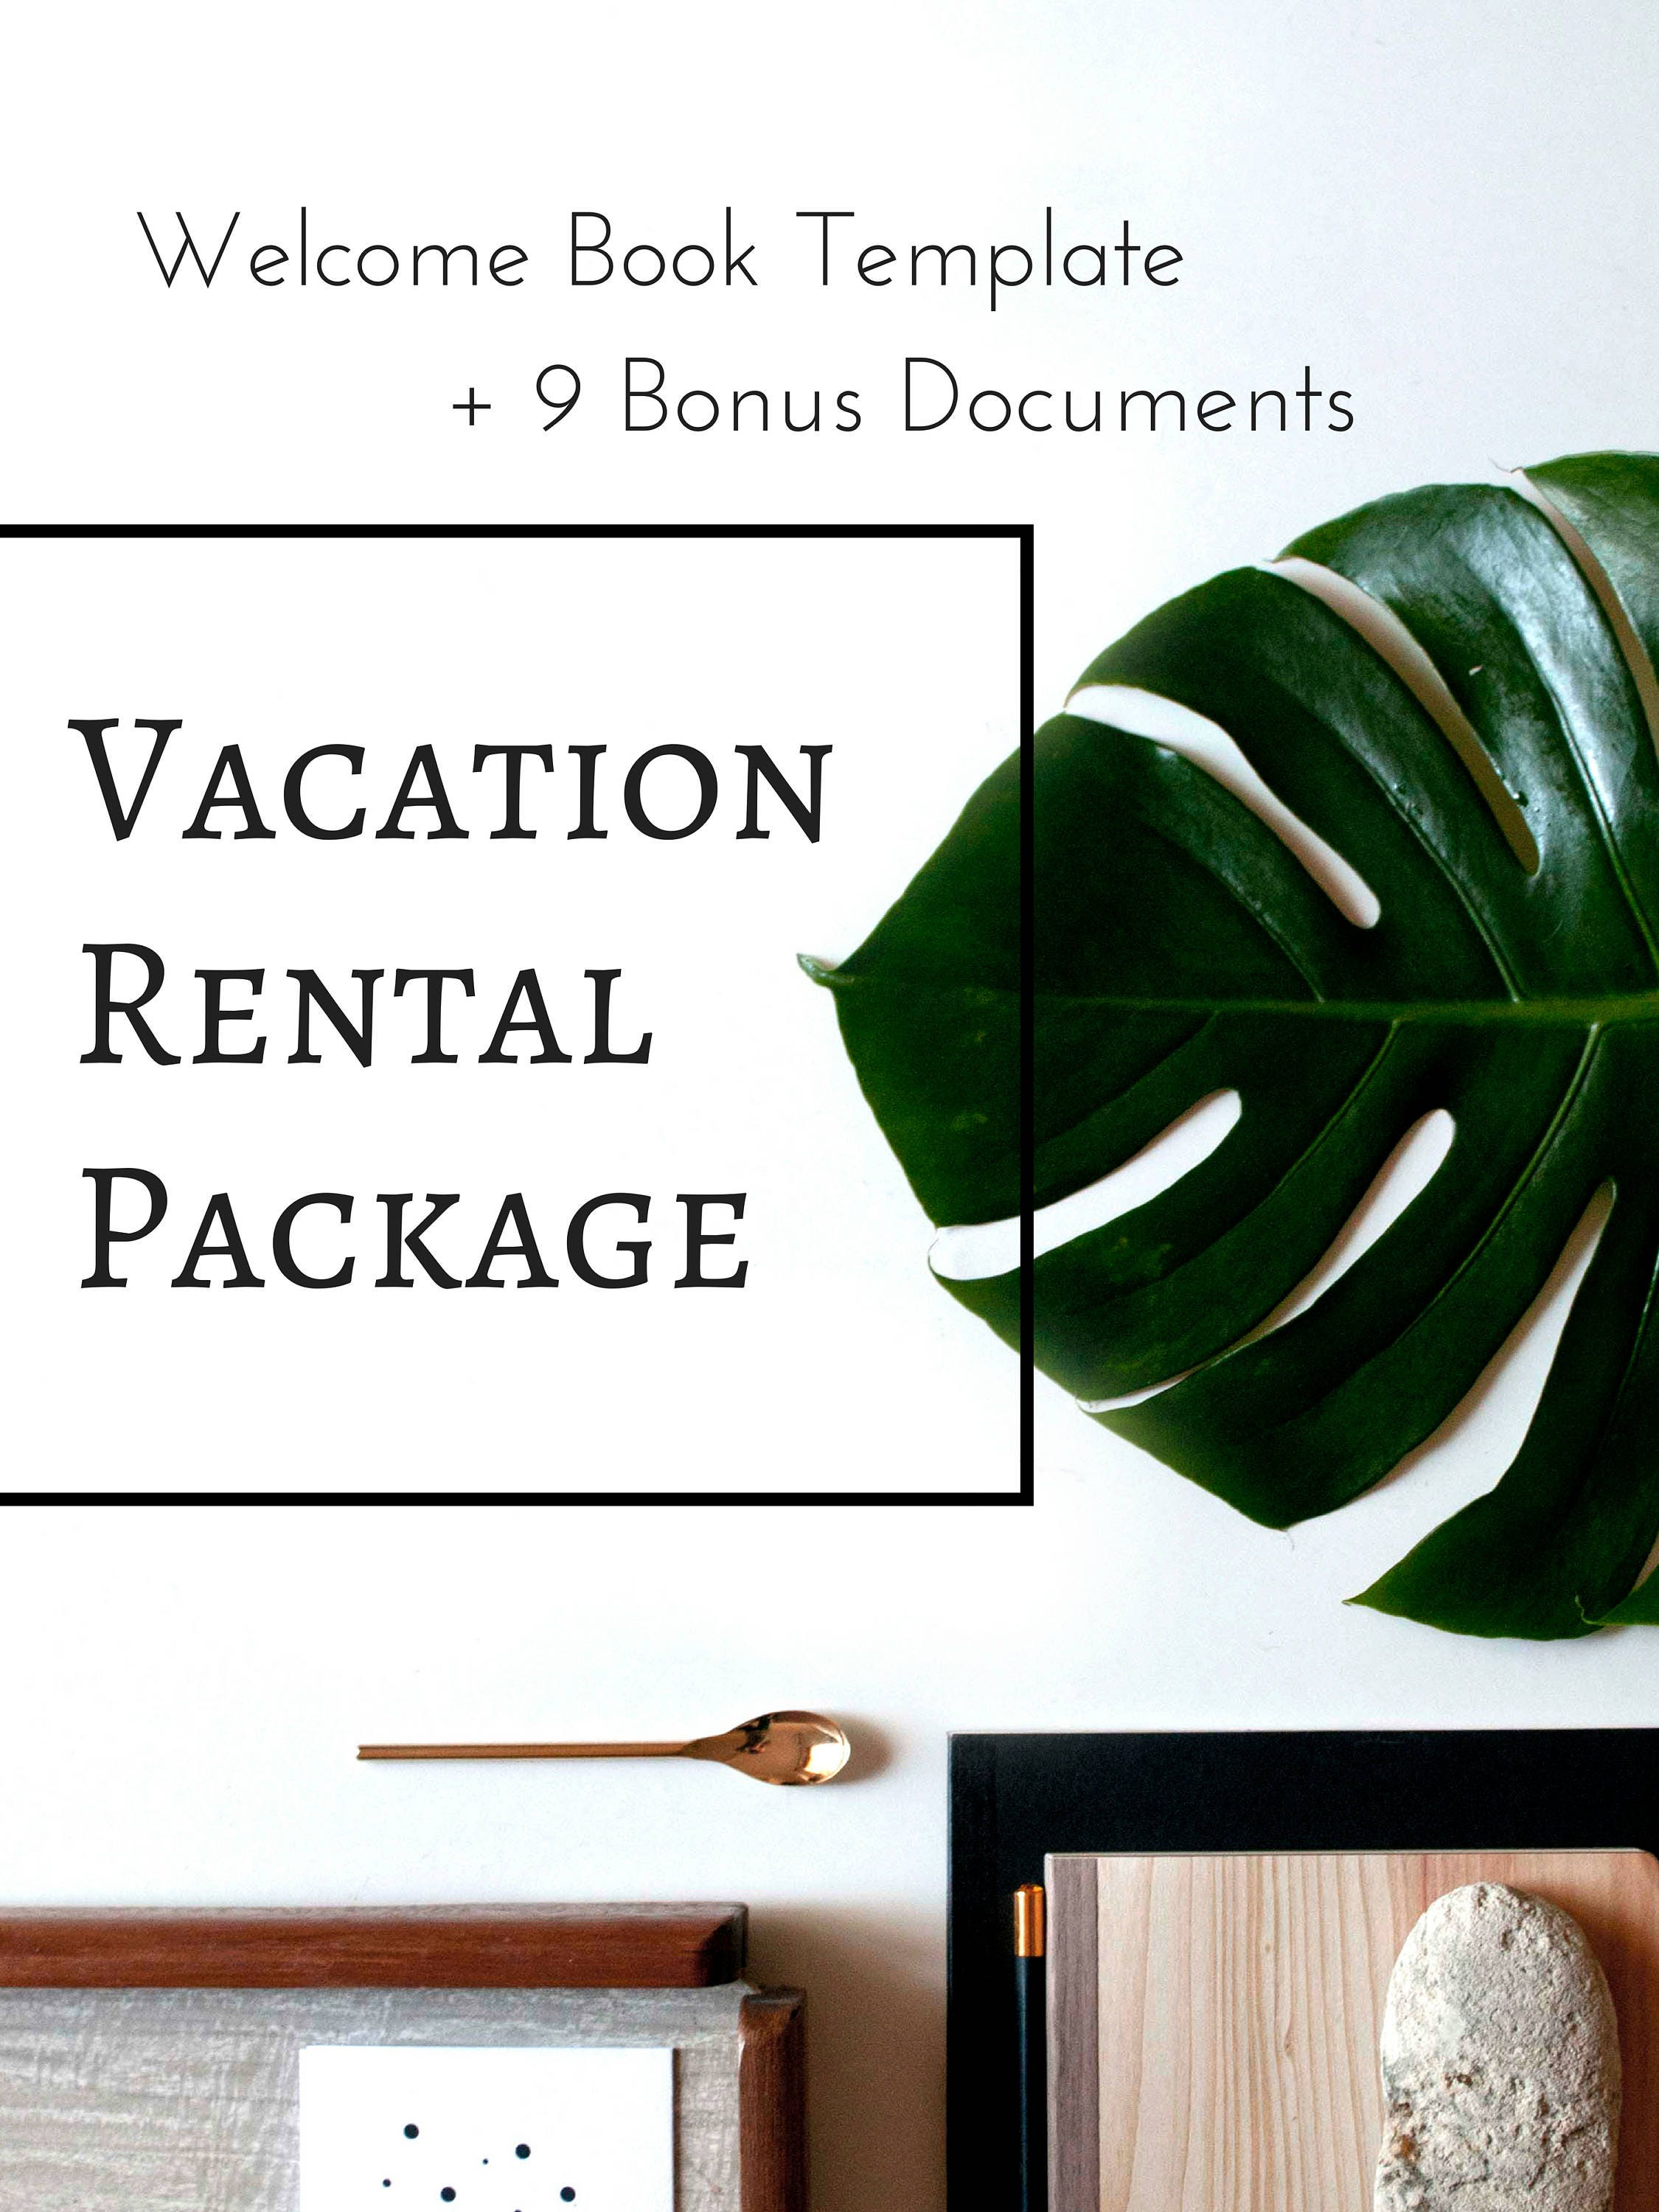 10 item package vacation rental welcome book template. Black Bedroom Furniture Sets. Home Design Ideas